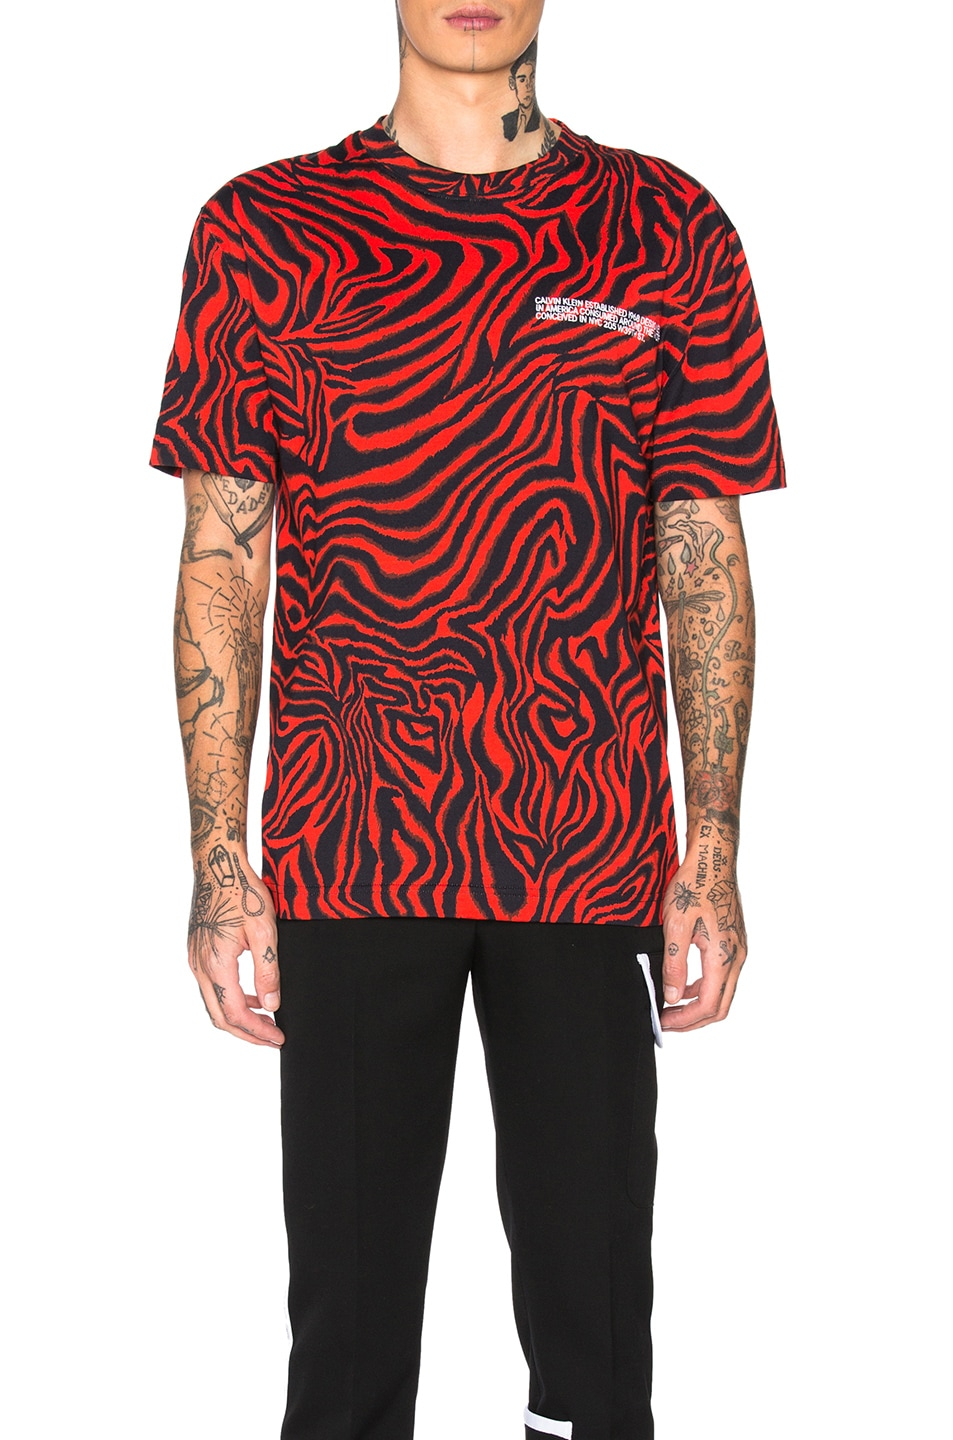 Calvin Klein 205w39nyc Accessories All Over Print Tee